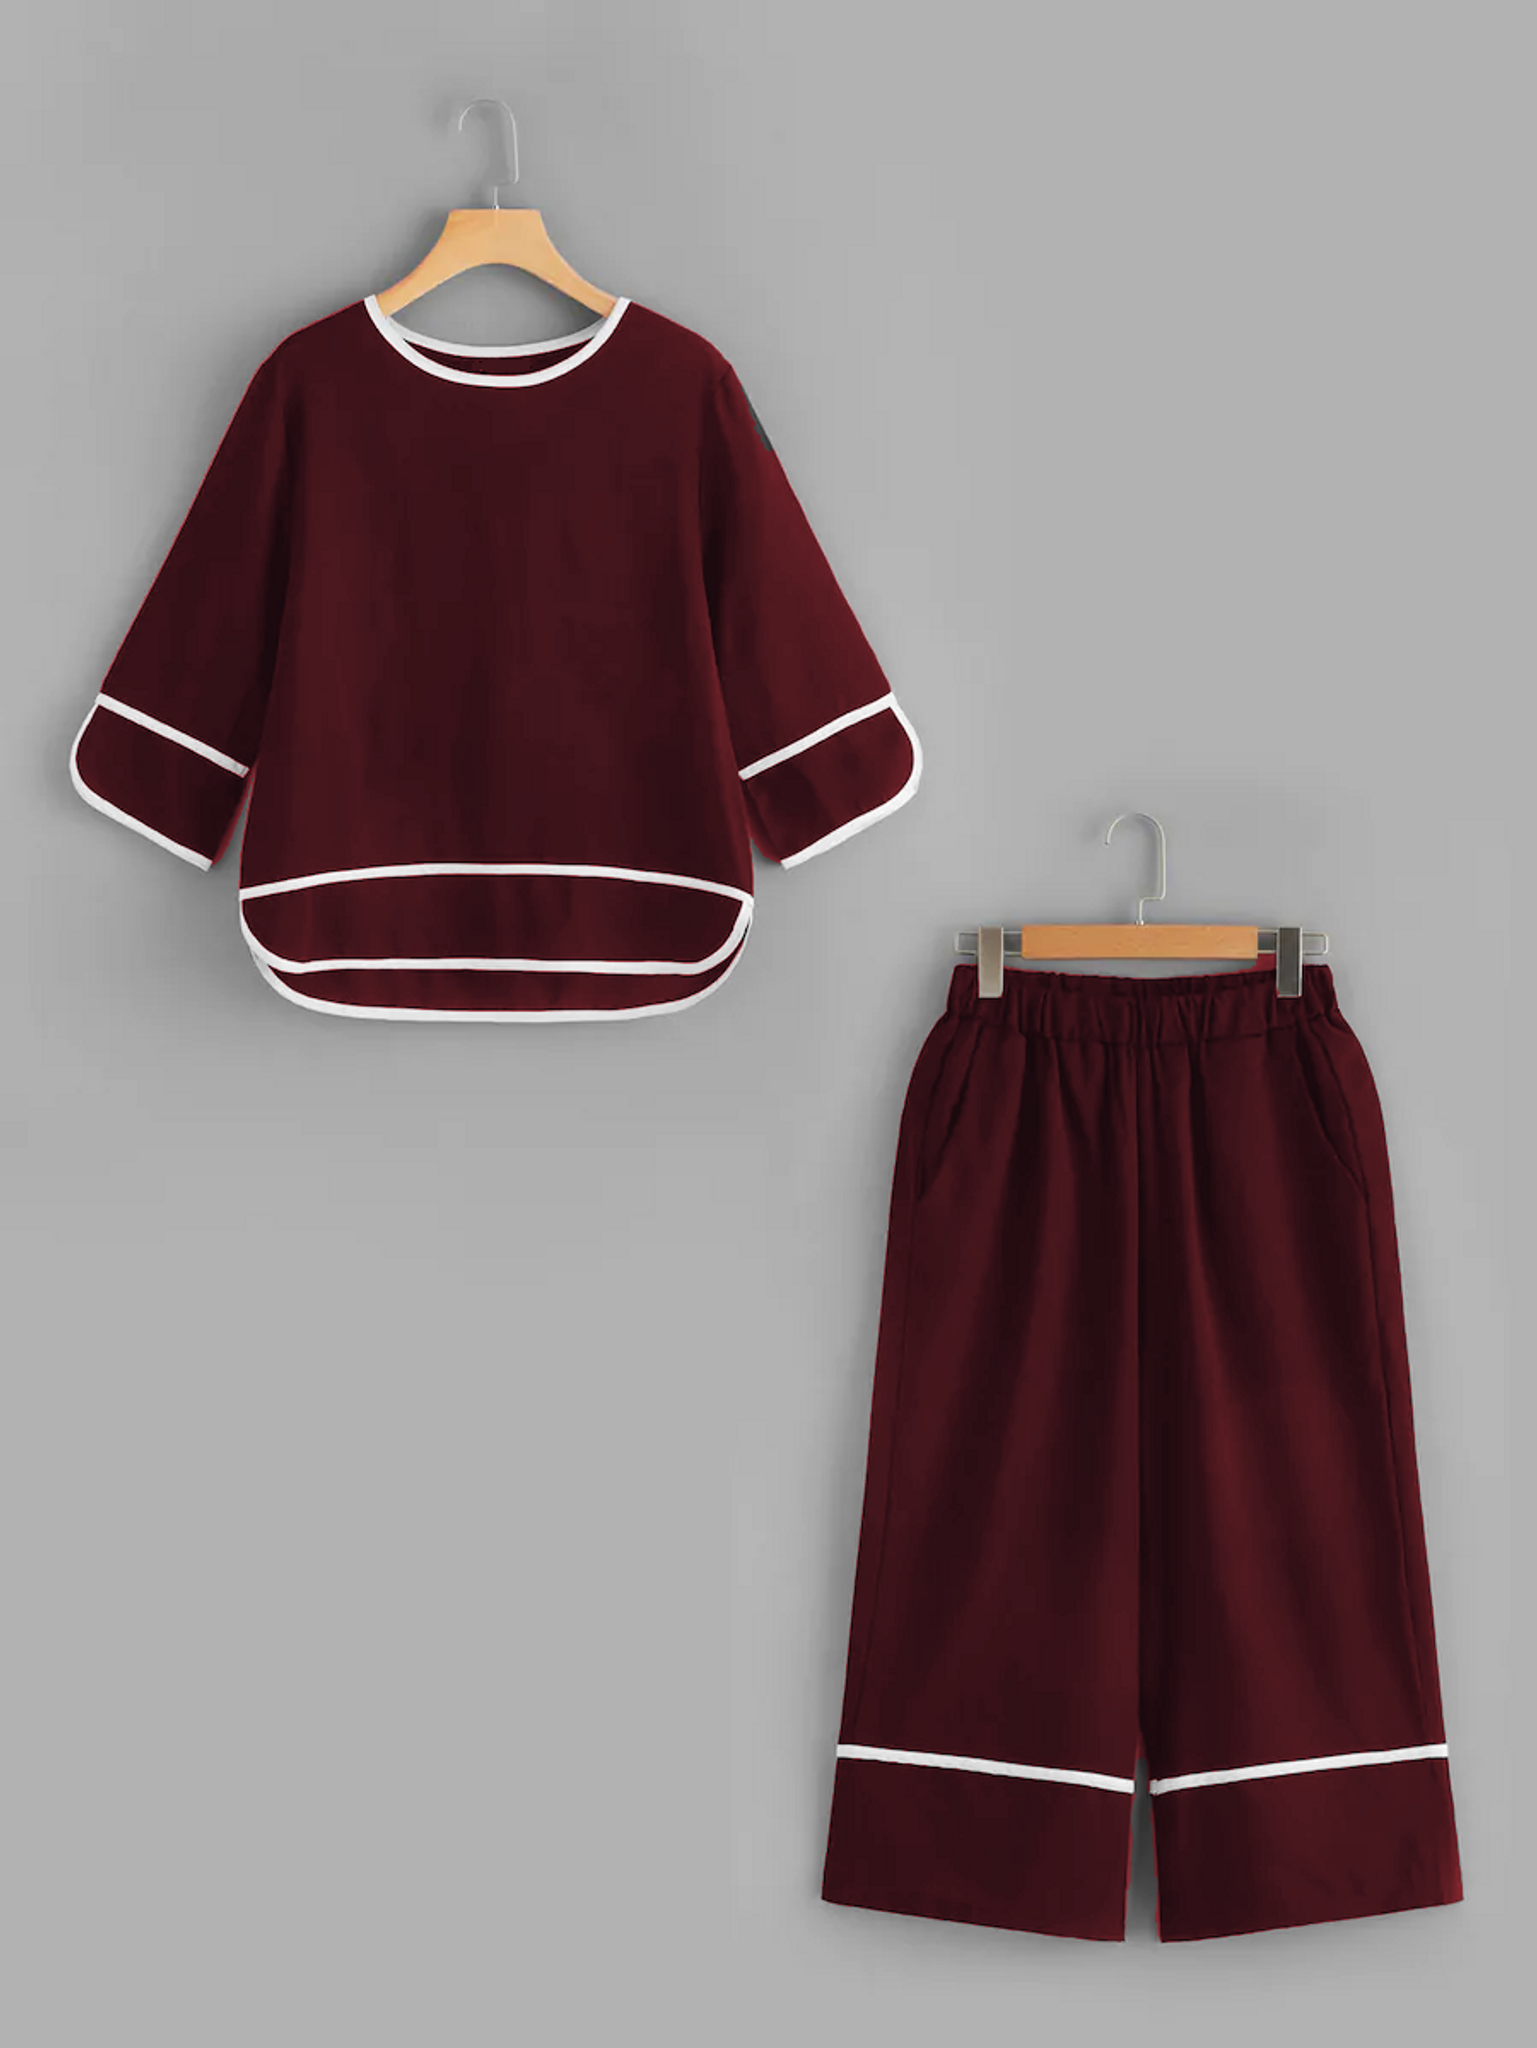 Fifth Avenue Contrast Binding Top and Culotte Pants 2 Piece Set TPS34 - Maroon